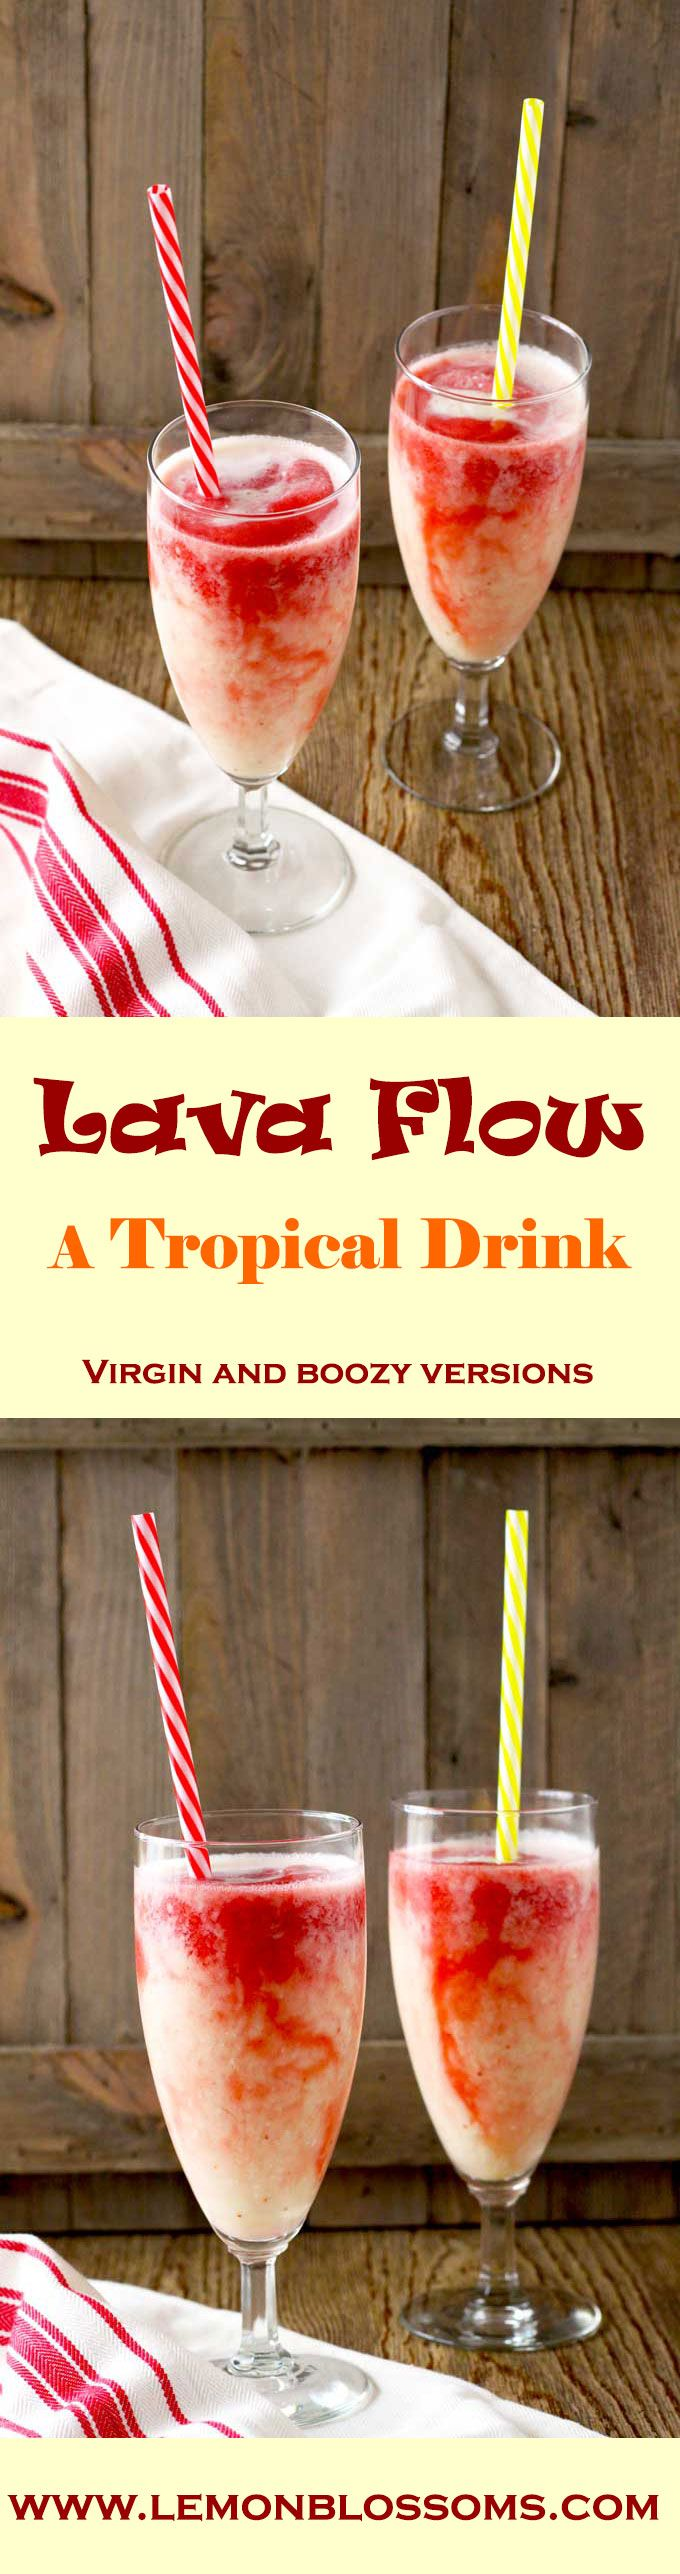 Lava Flow ~ a tropical drink that mixes pineapple, coconut and strawberries to create a sweet, delicious and refreshing drink. One sip will transport you to a beautiful tropical island. It's like paradise in a glass!!!